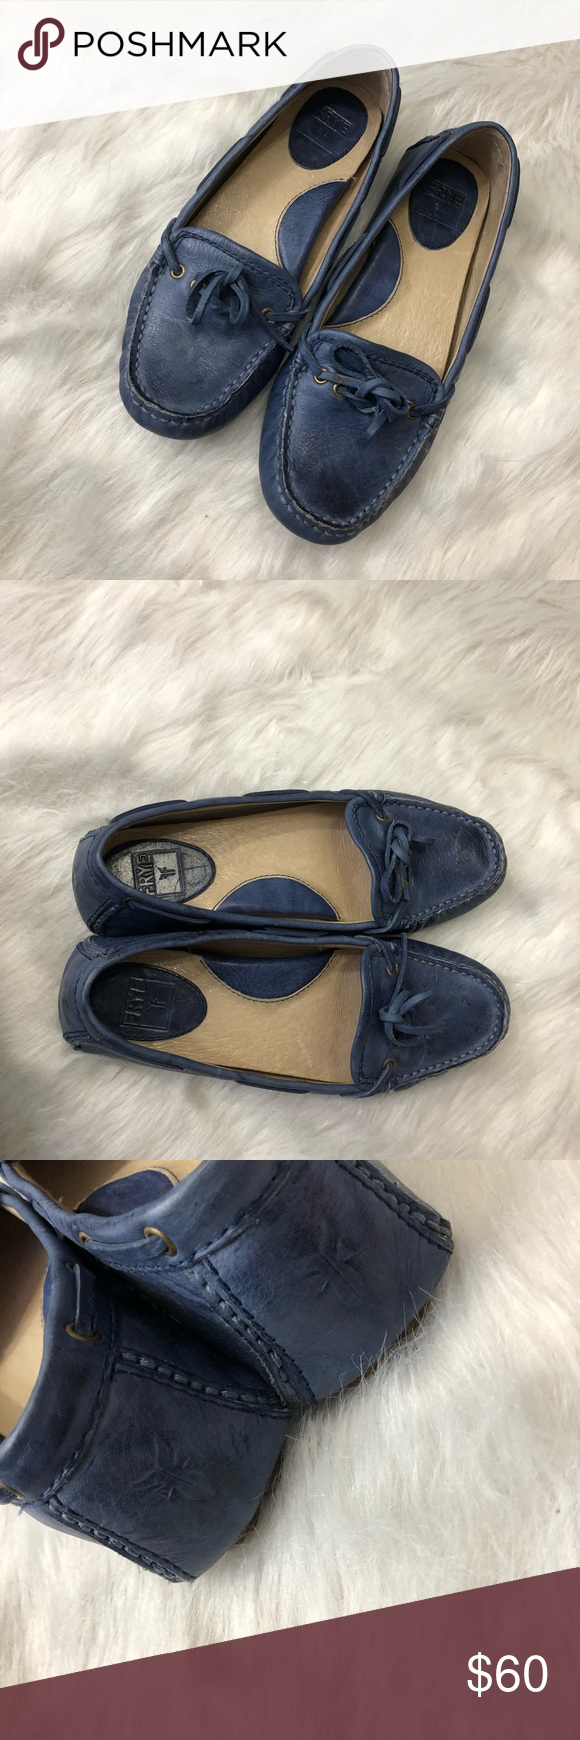 f615fd497fd I just added this listing on Poshmark  Frye Reagan Campus Driver Loafers  Size 6.  shopmycloset  poshmark  fashion  shopping  style  forsale  Frye   Shoes